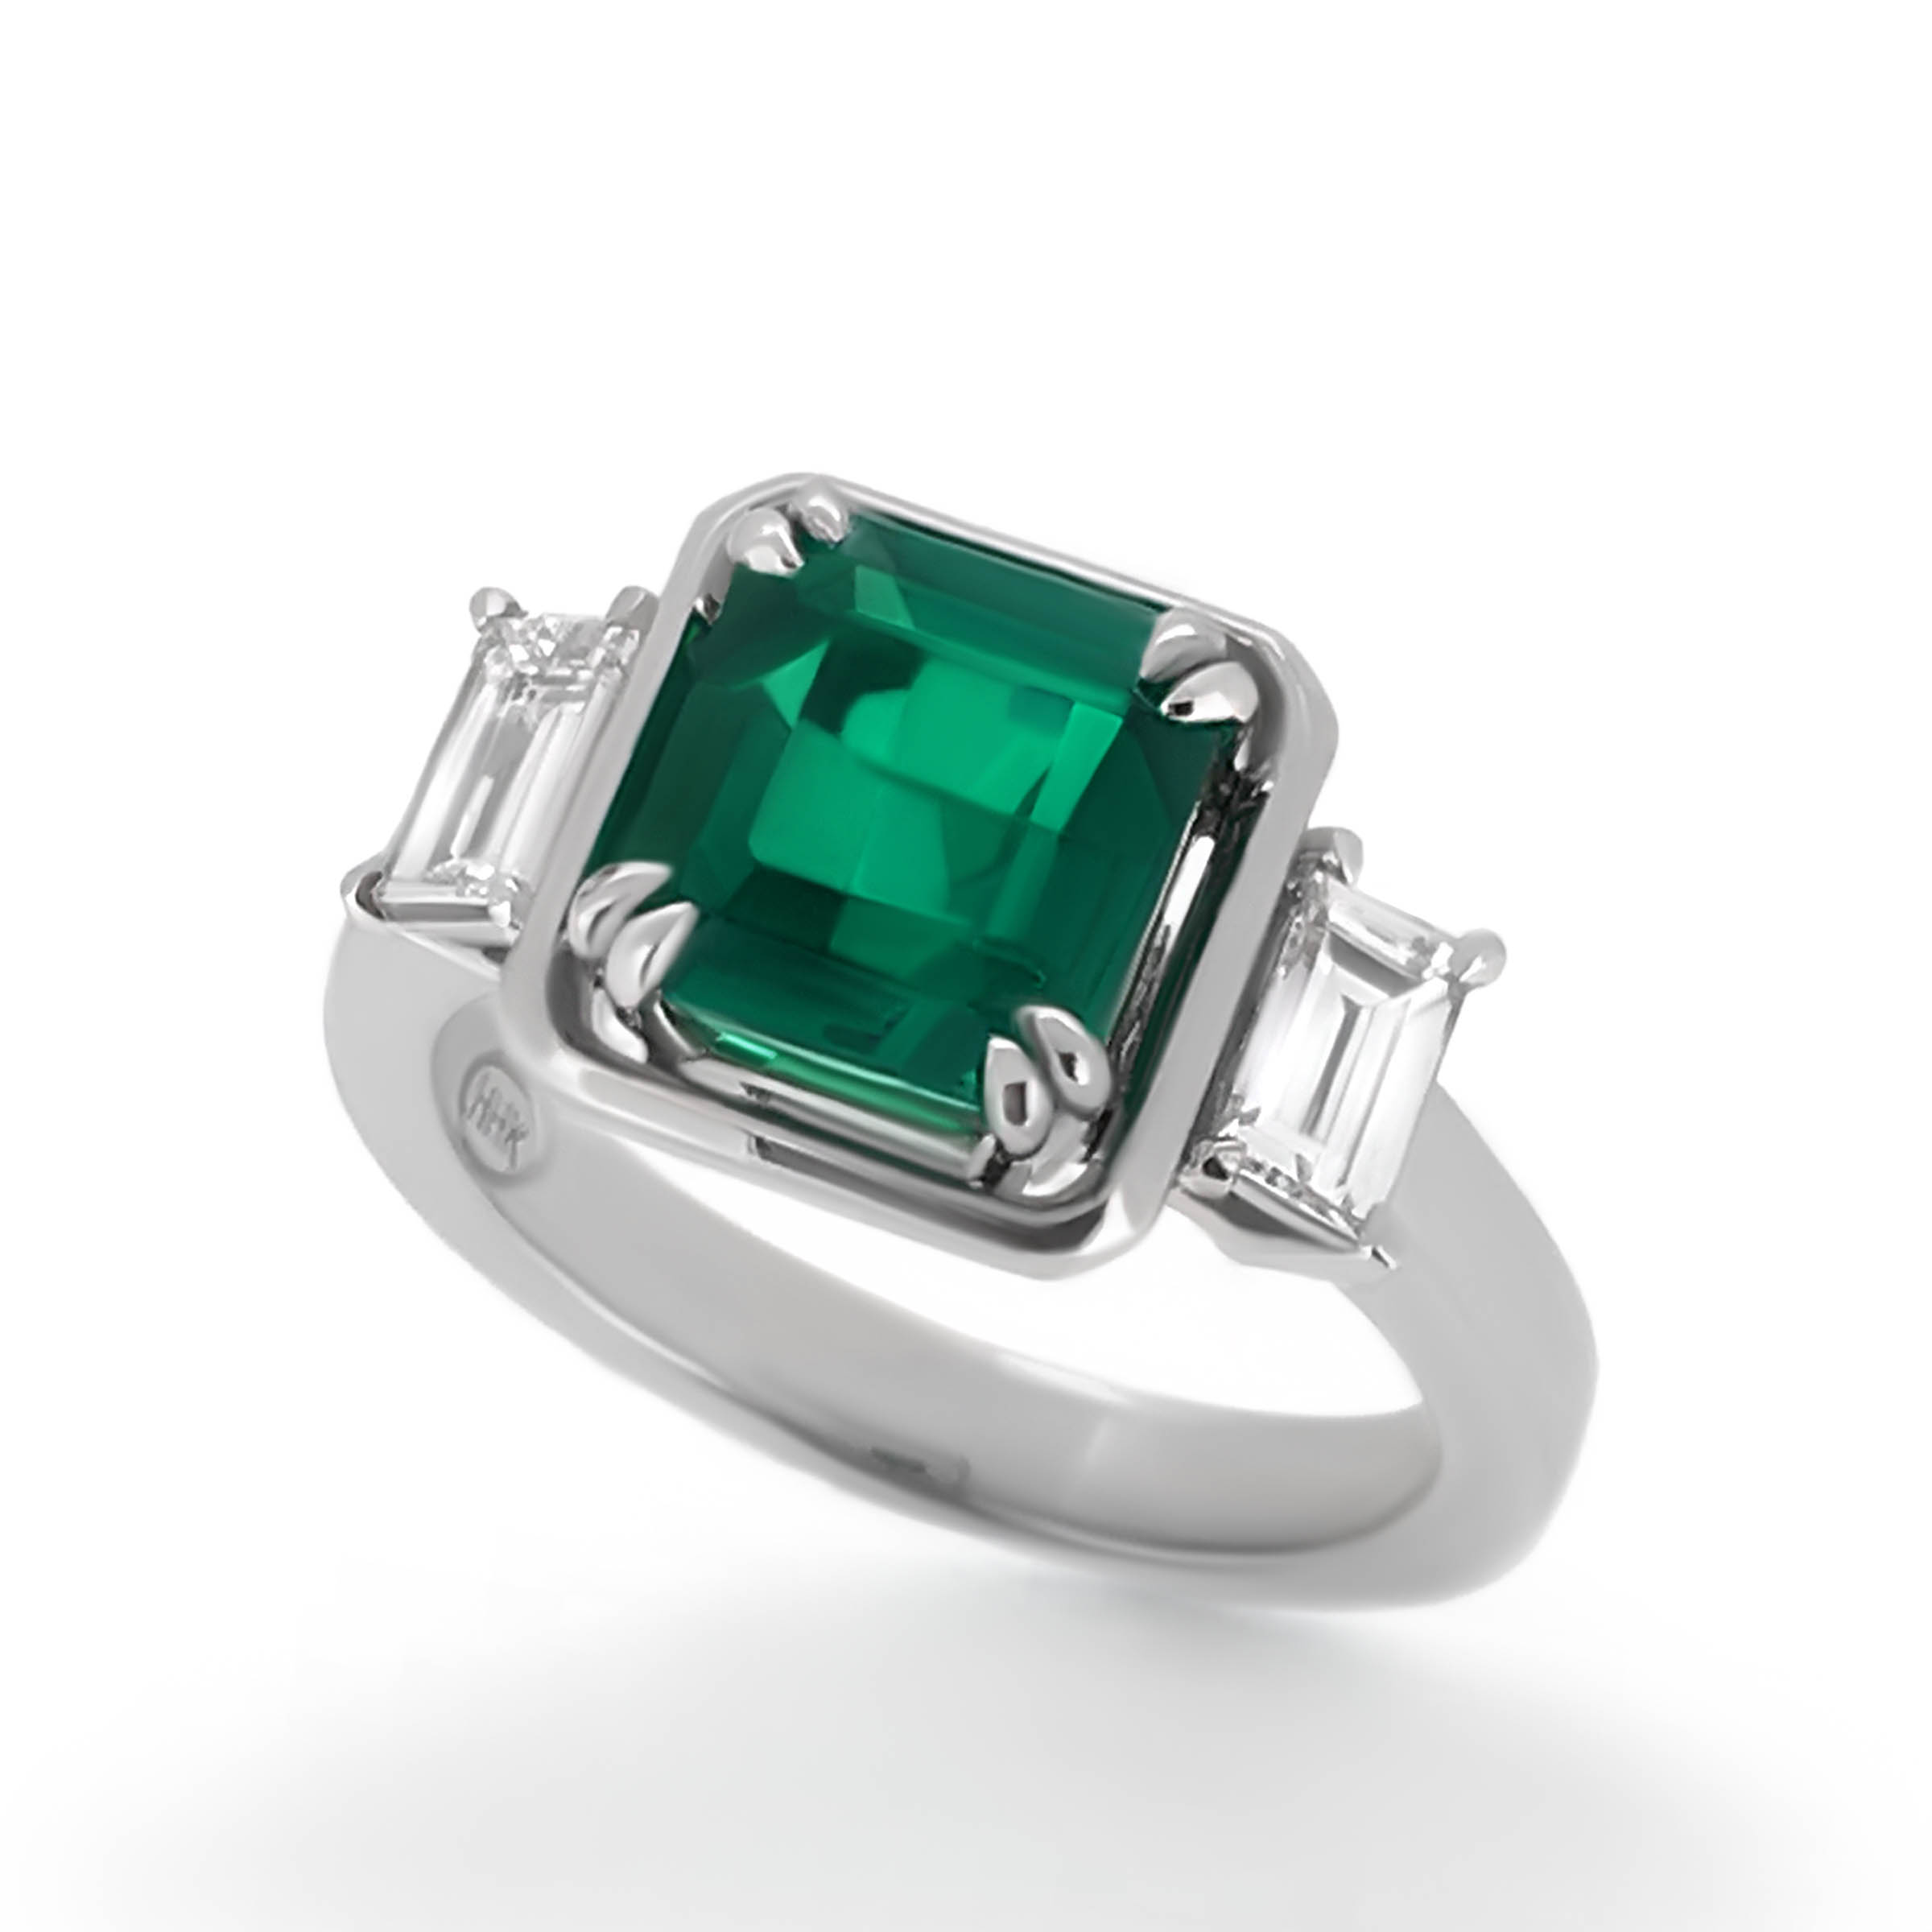 ed emerald tourmaline diamond wedding white maya rmyl uk ring fine gold jewellery stone rings leaf engagement london modern angeles los